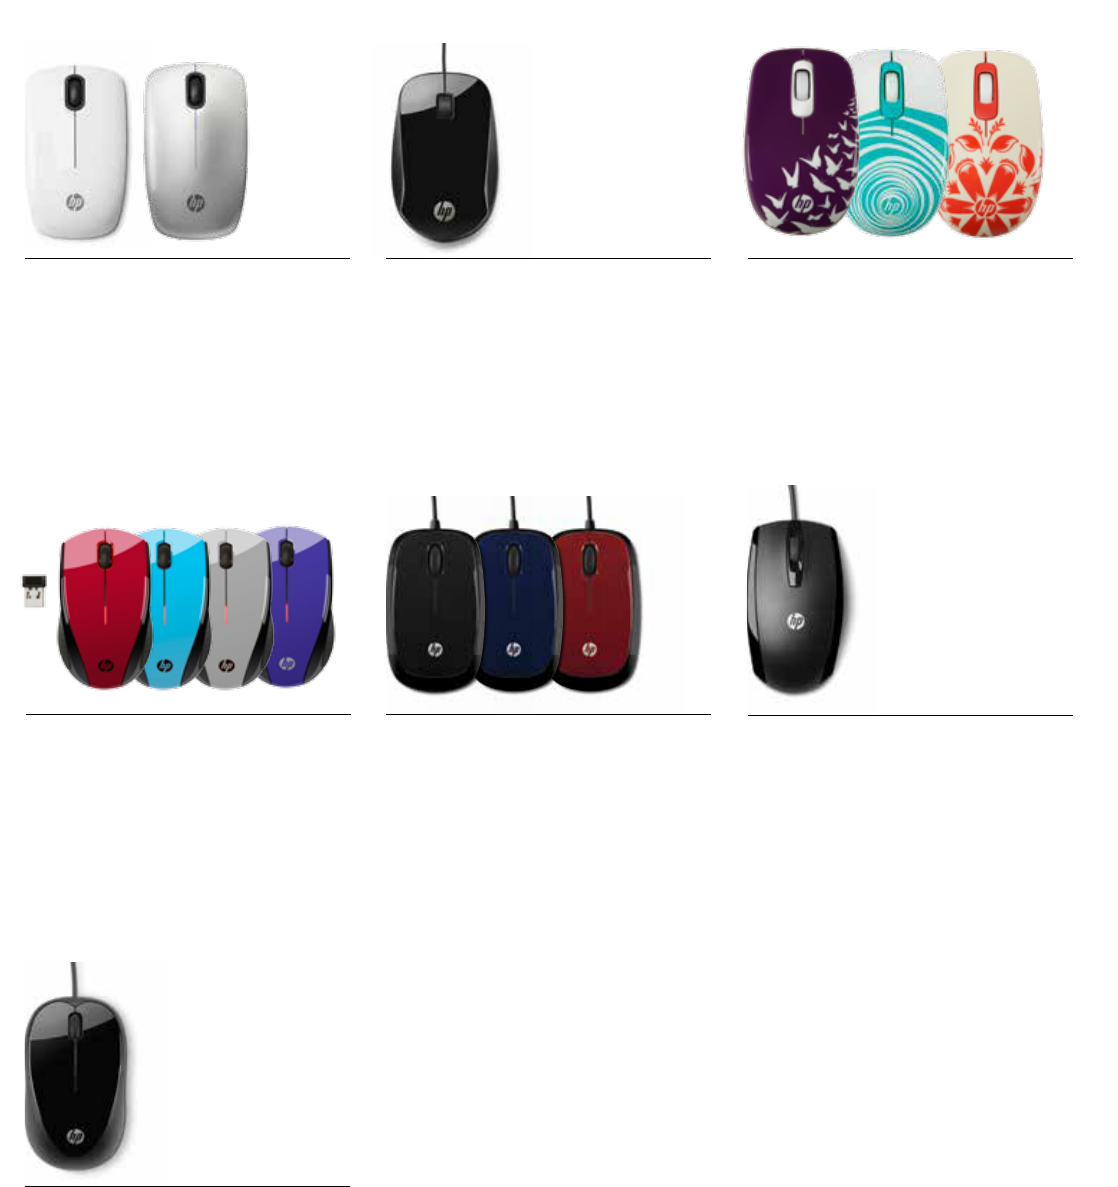 ONEMO 2.4GHz Innovative Pen-Style Handheld Wireless Chic Mouse for PC Laptop Gray Color : Grey